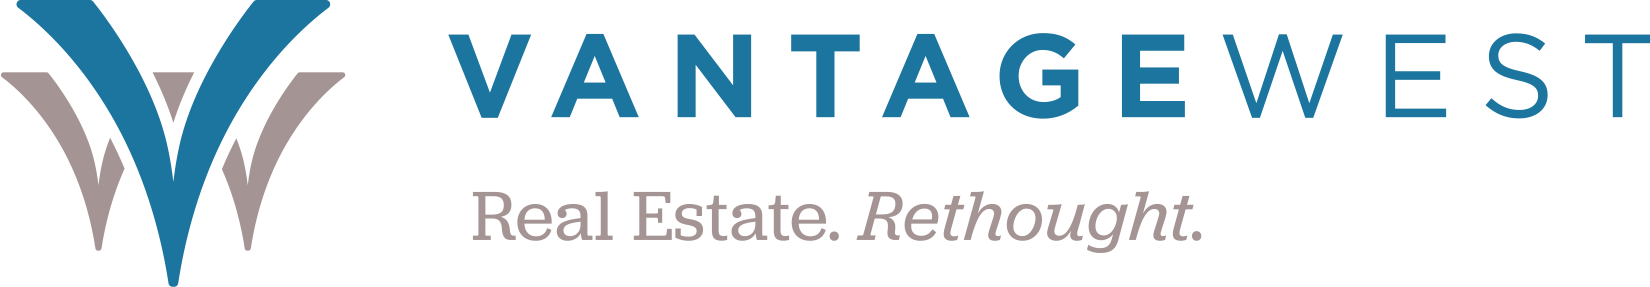 Vantage West Real Estate logo